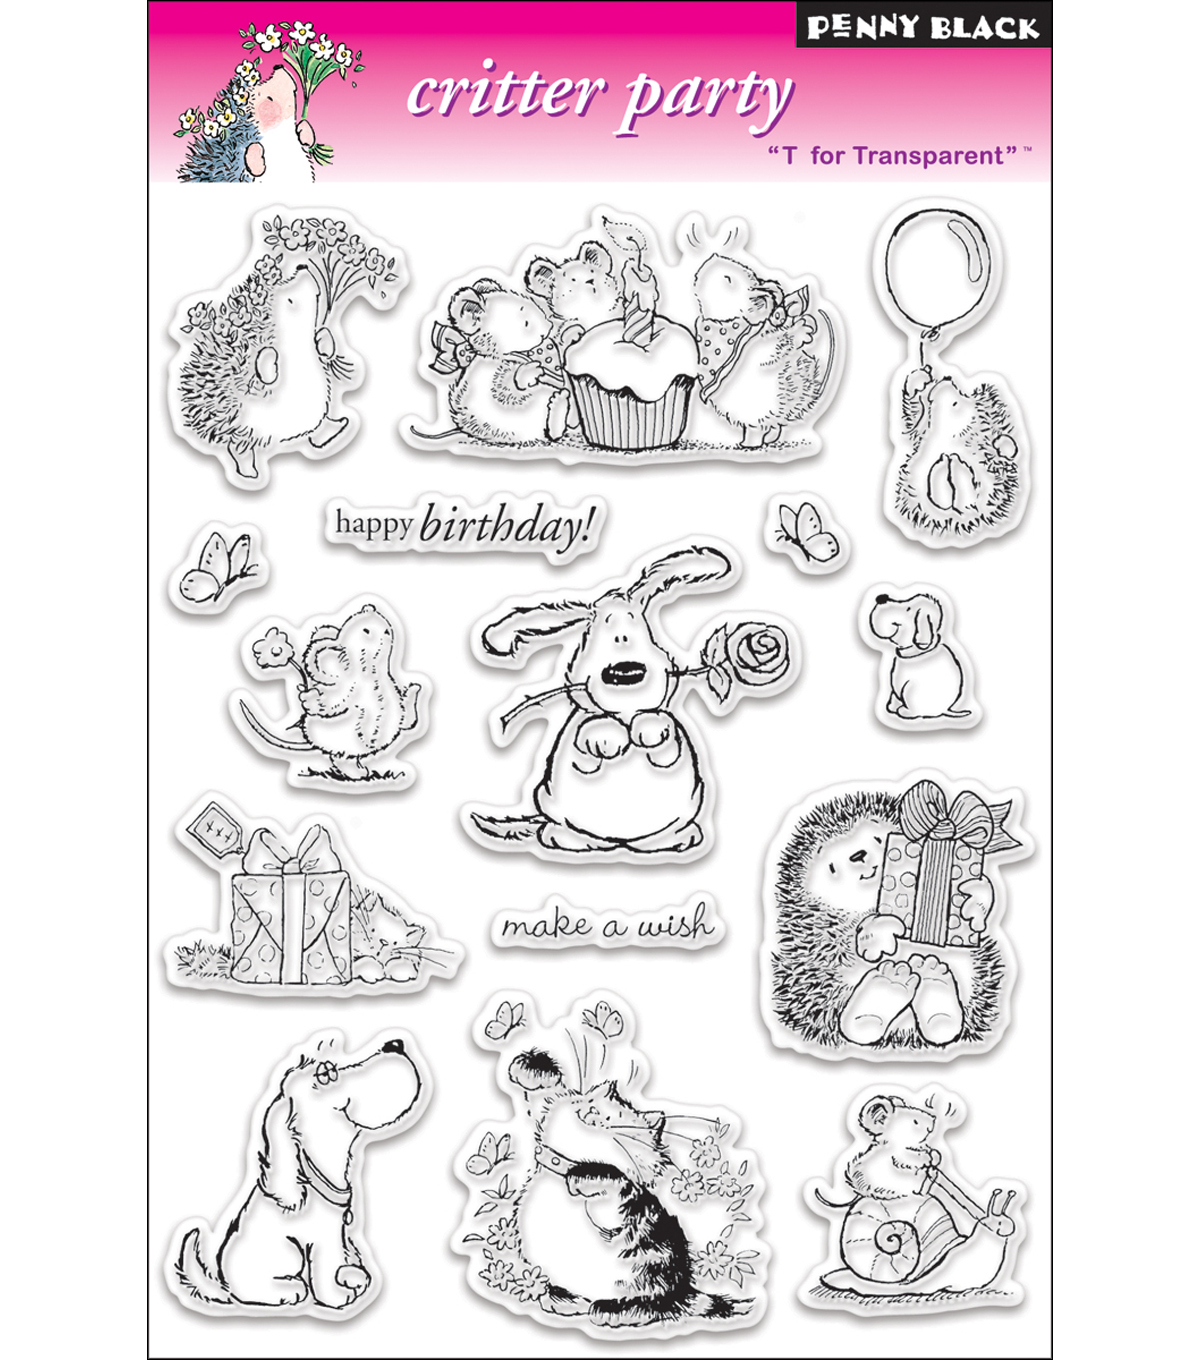 Penny Black Clear Stamps 5\u0022X7.5\u0022 Sheet-Critter Party